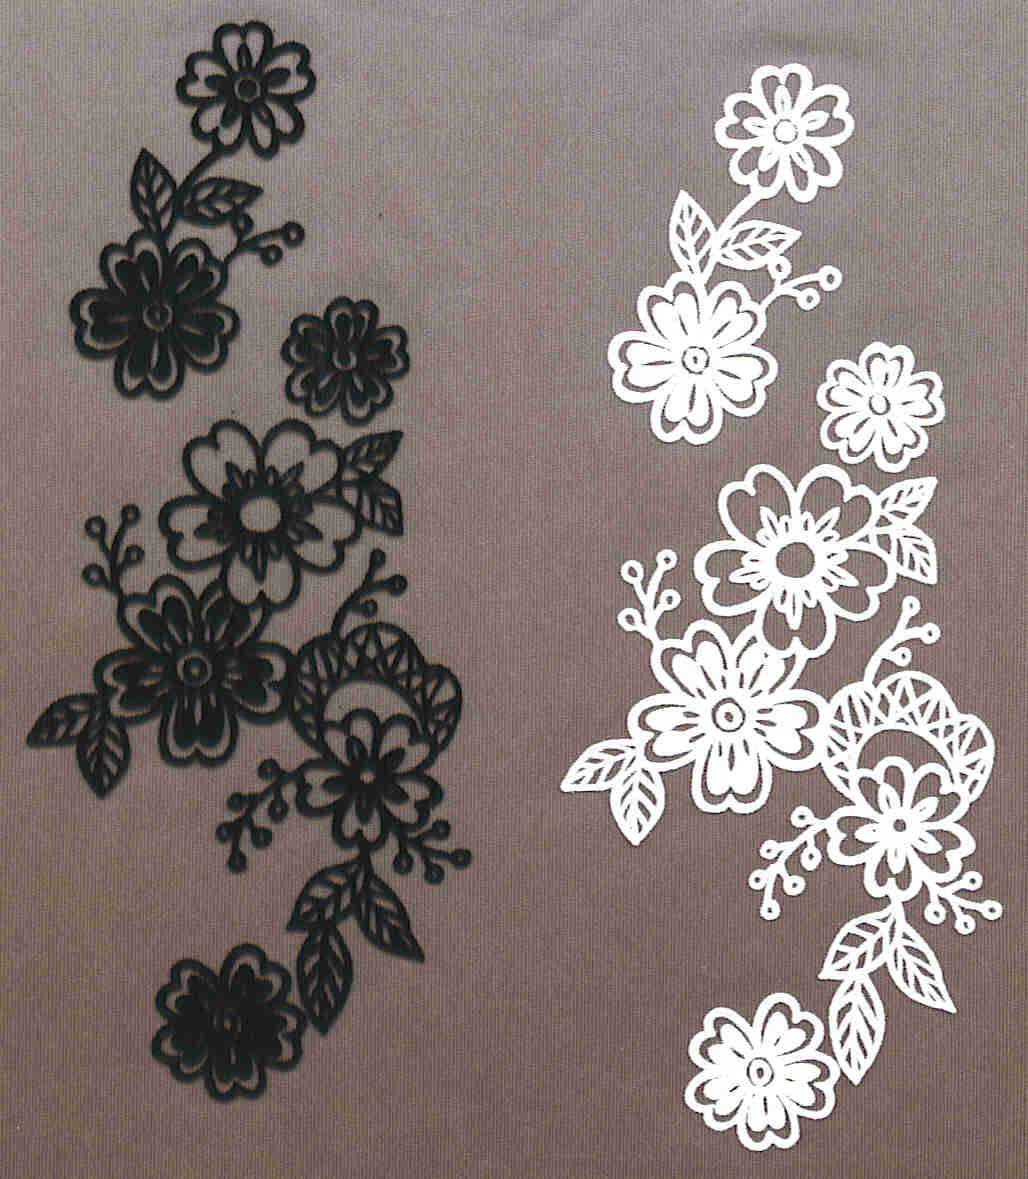 Flock Heat Transfers/Iron-on Motif,Embroidery Lace,Applique,Patch